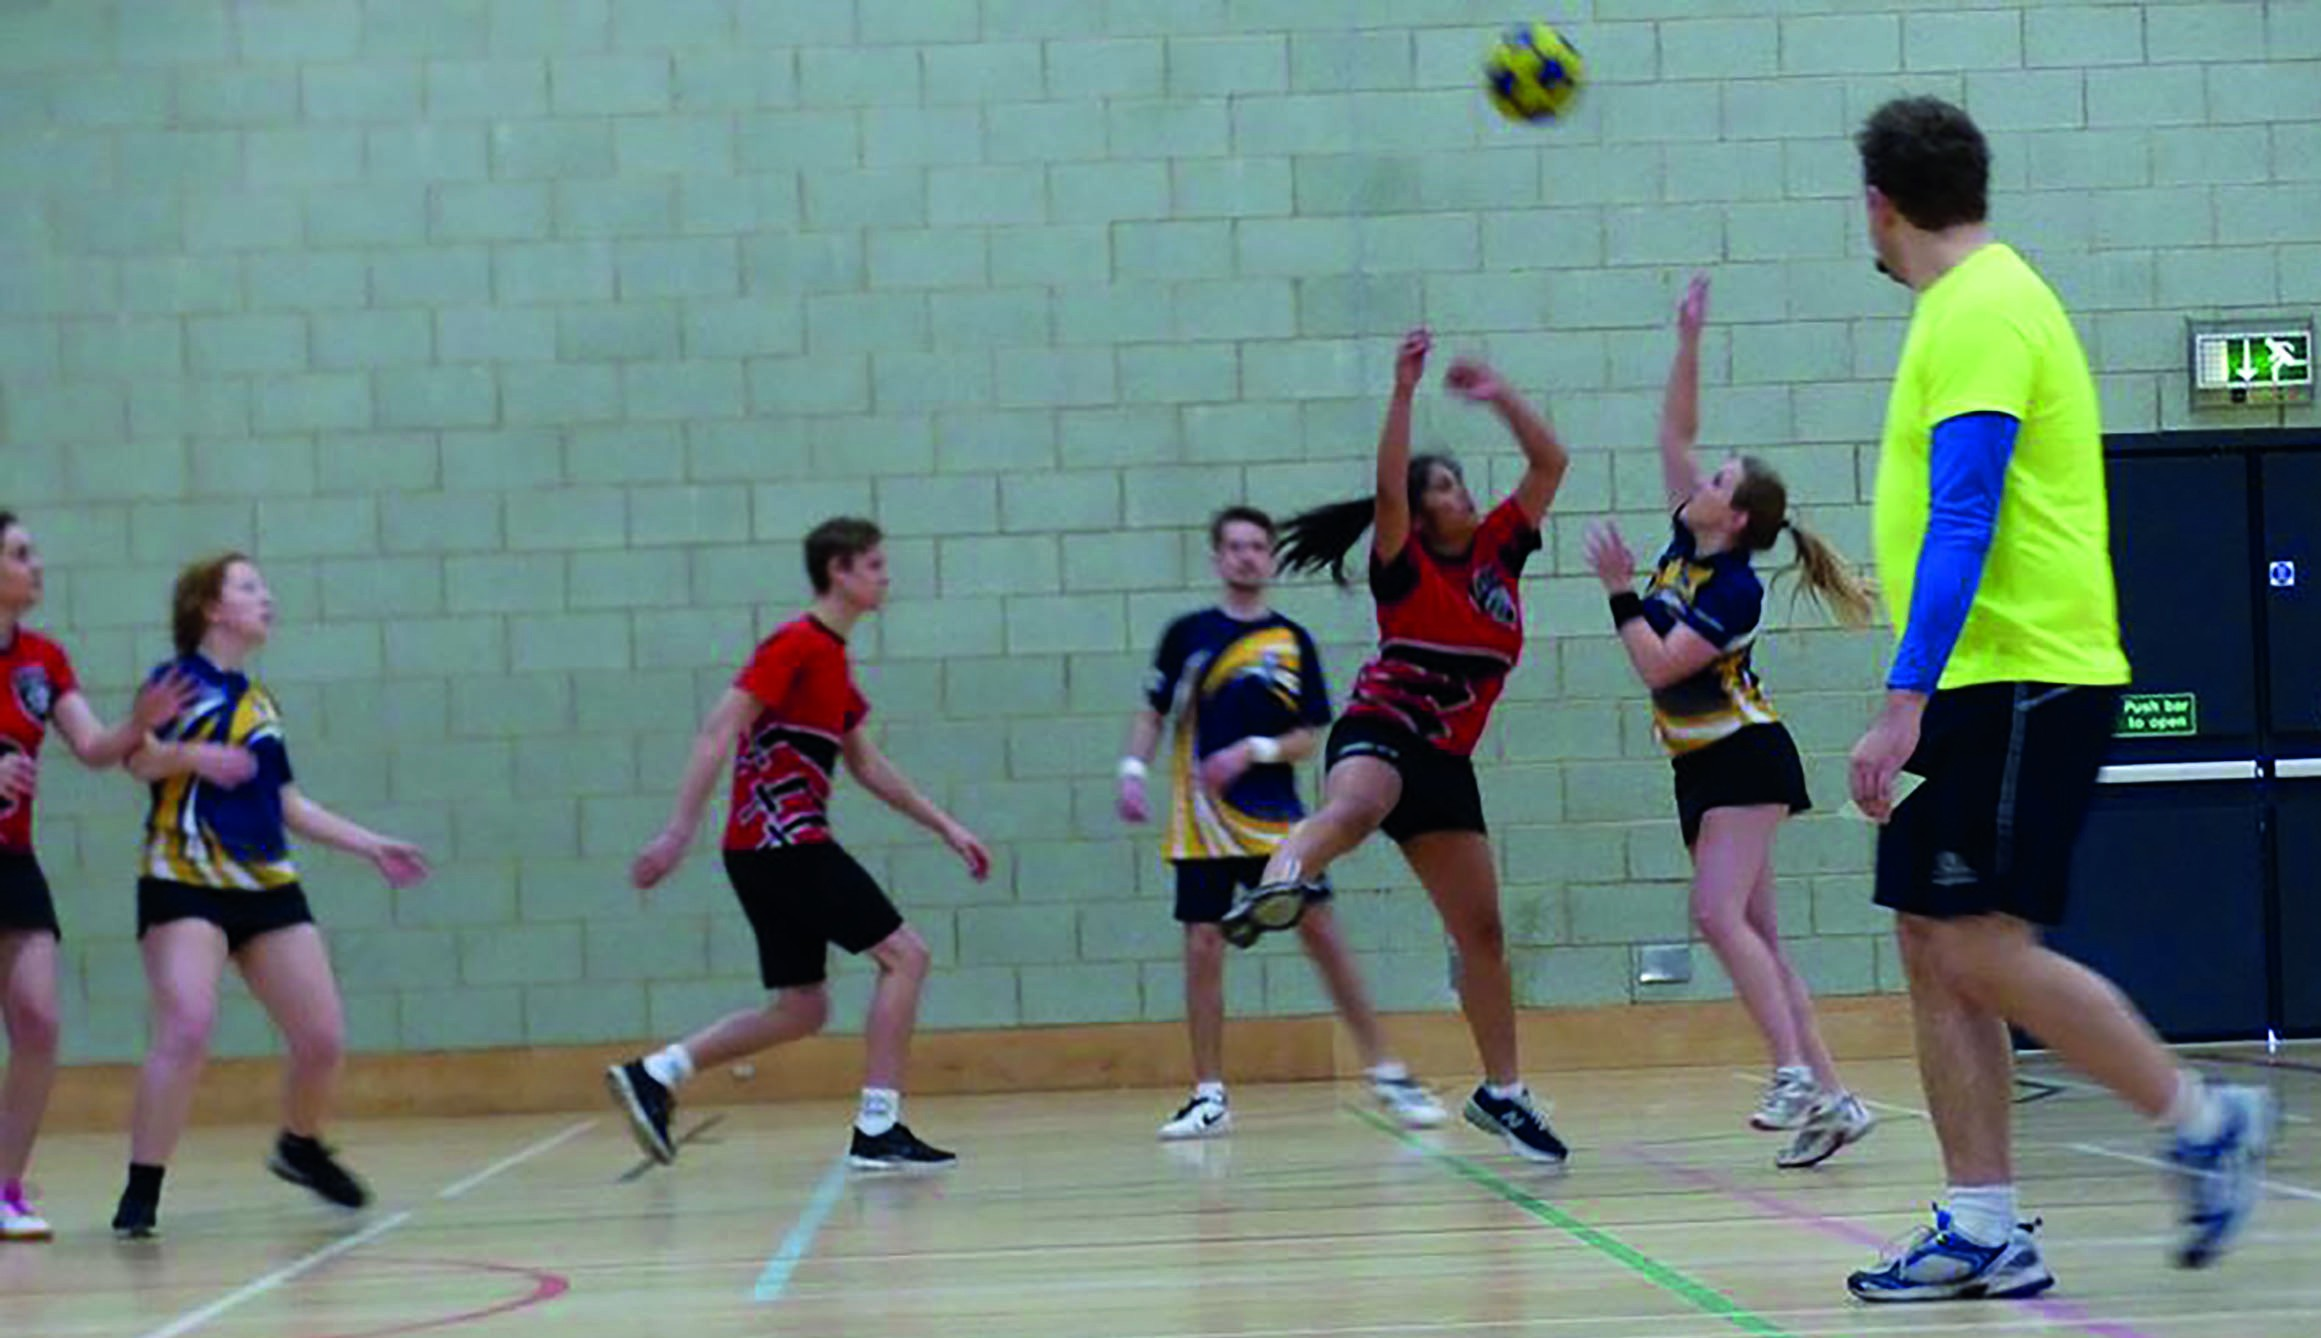 Korfball. Photo: Camille Koosyial